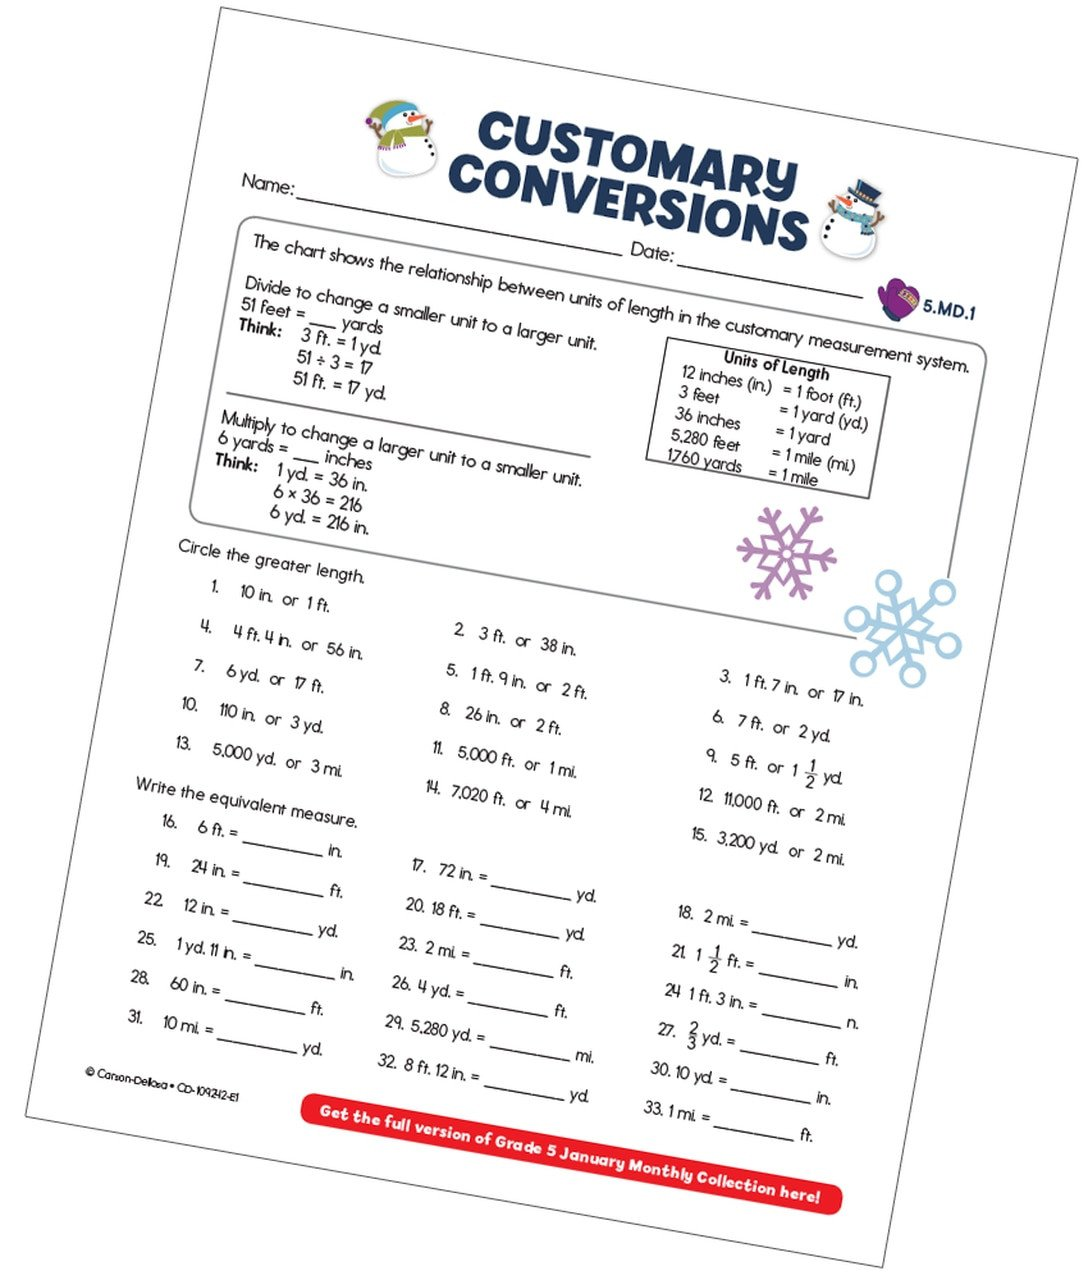 Customary Units Worksheet Customary Conversions Measurement Free Printable Carson